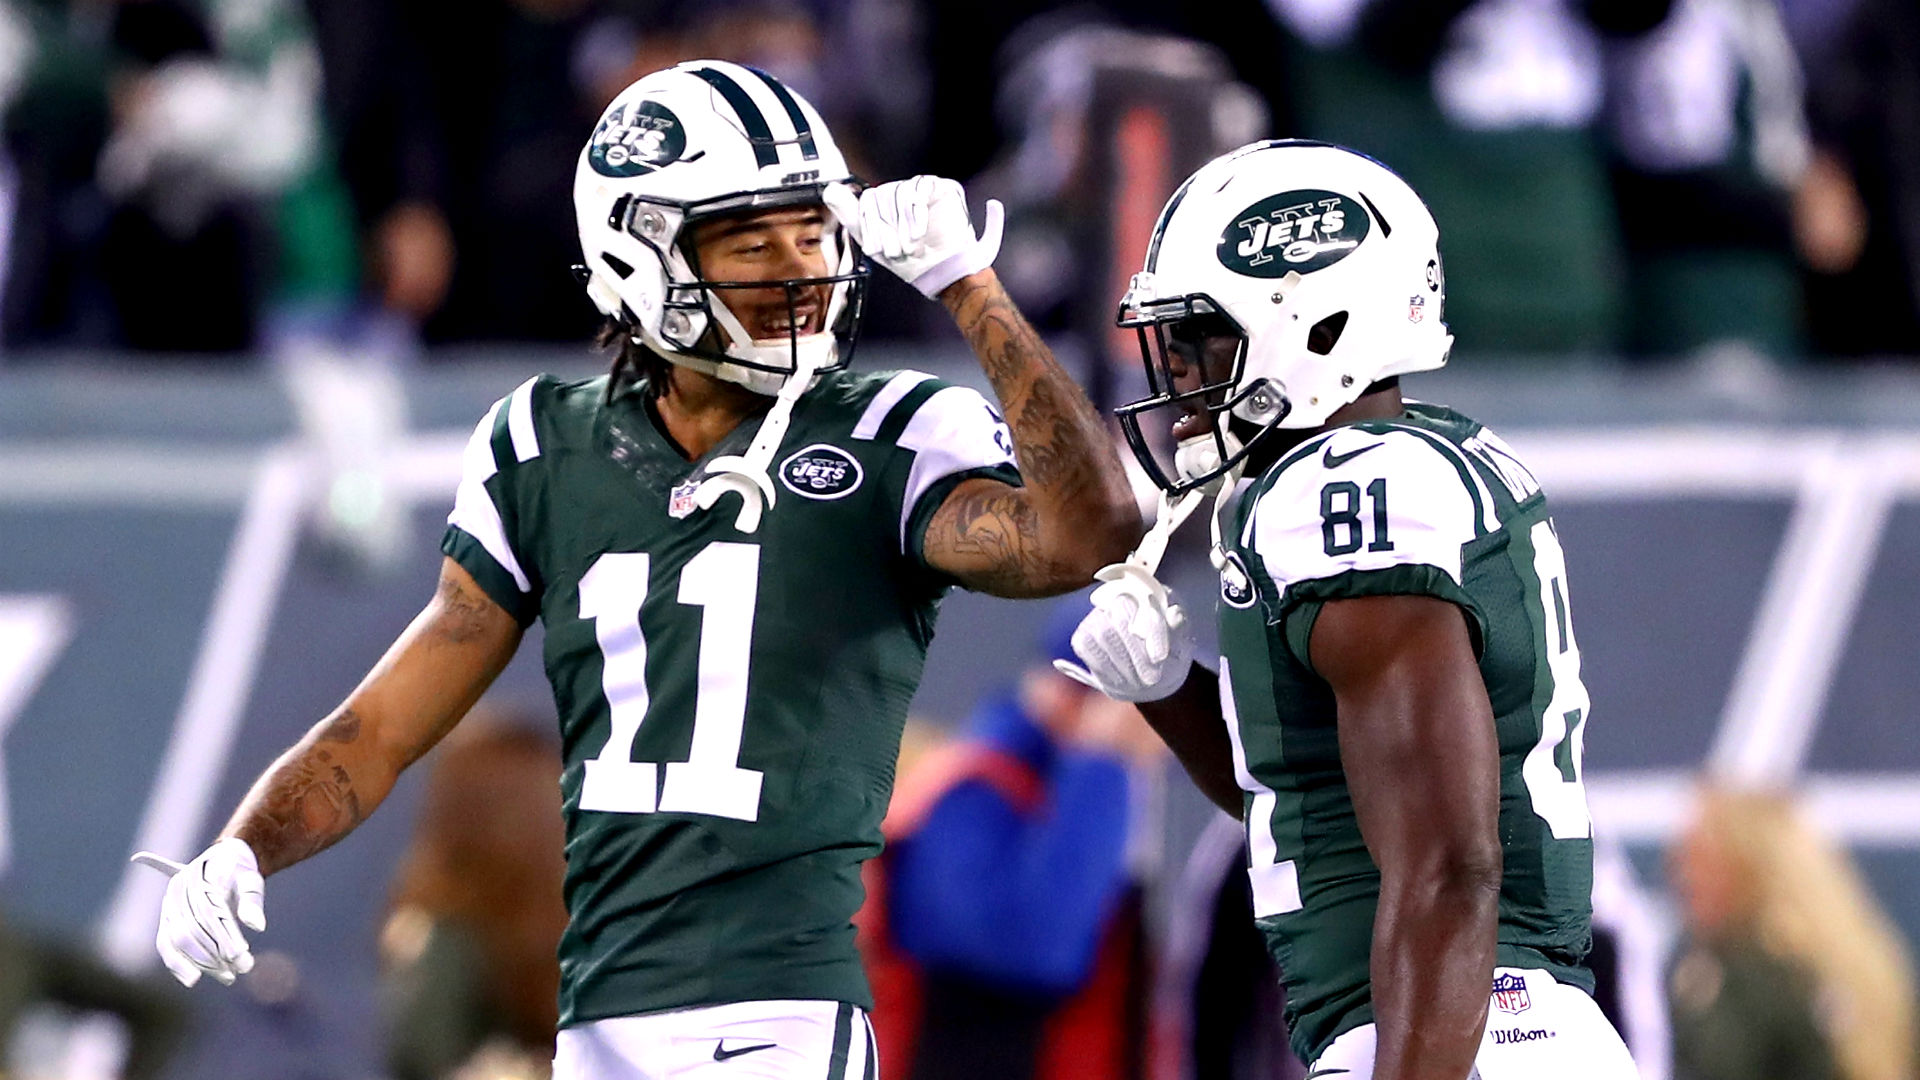 N.Y. Jets on-field groove session a social media smash hit | The ...